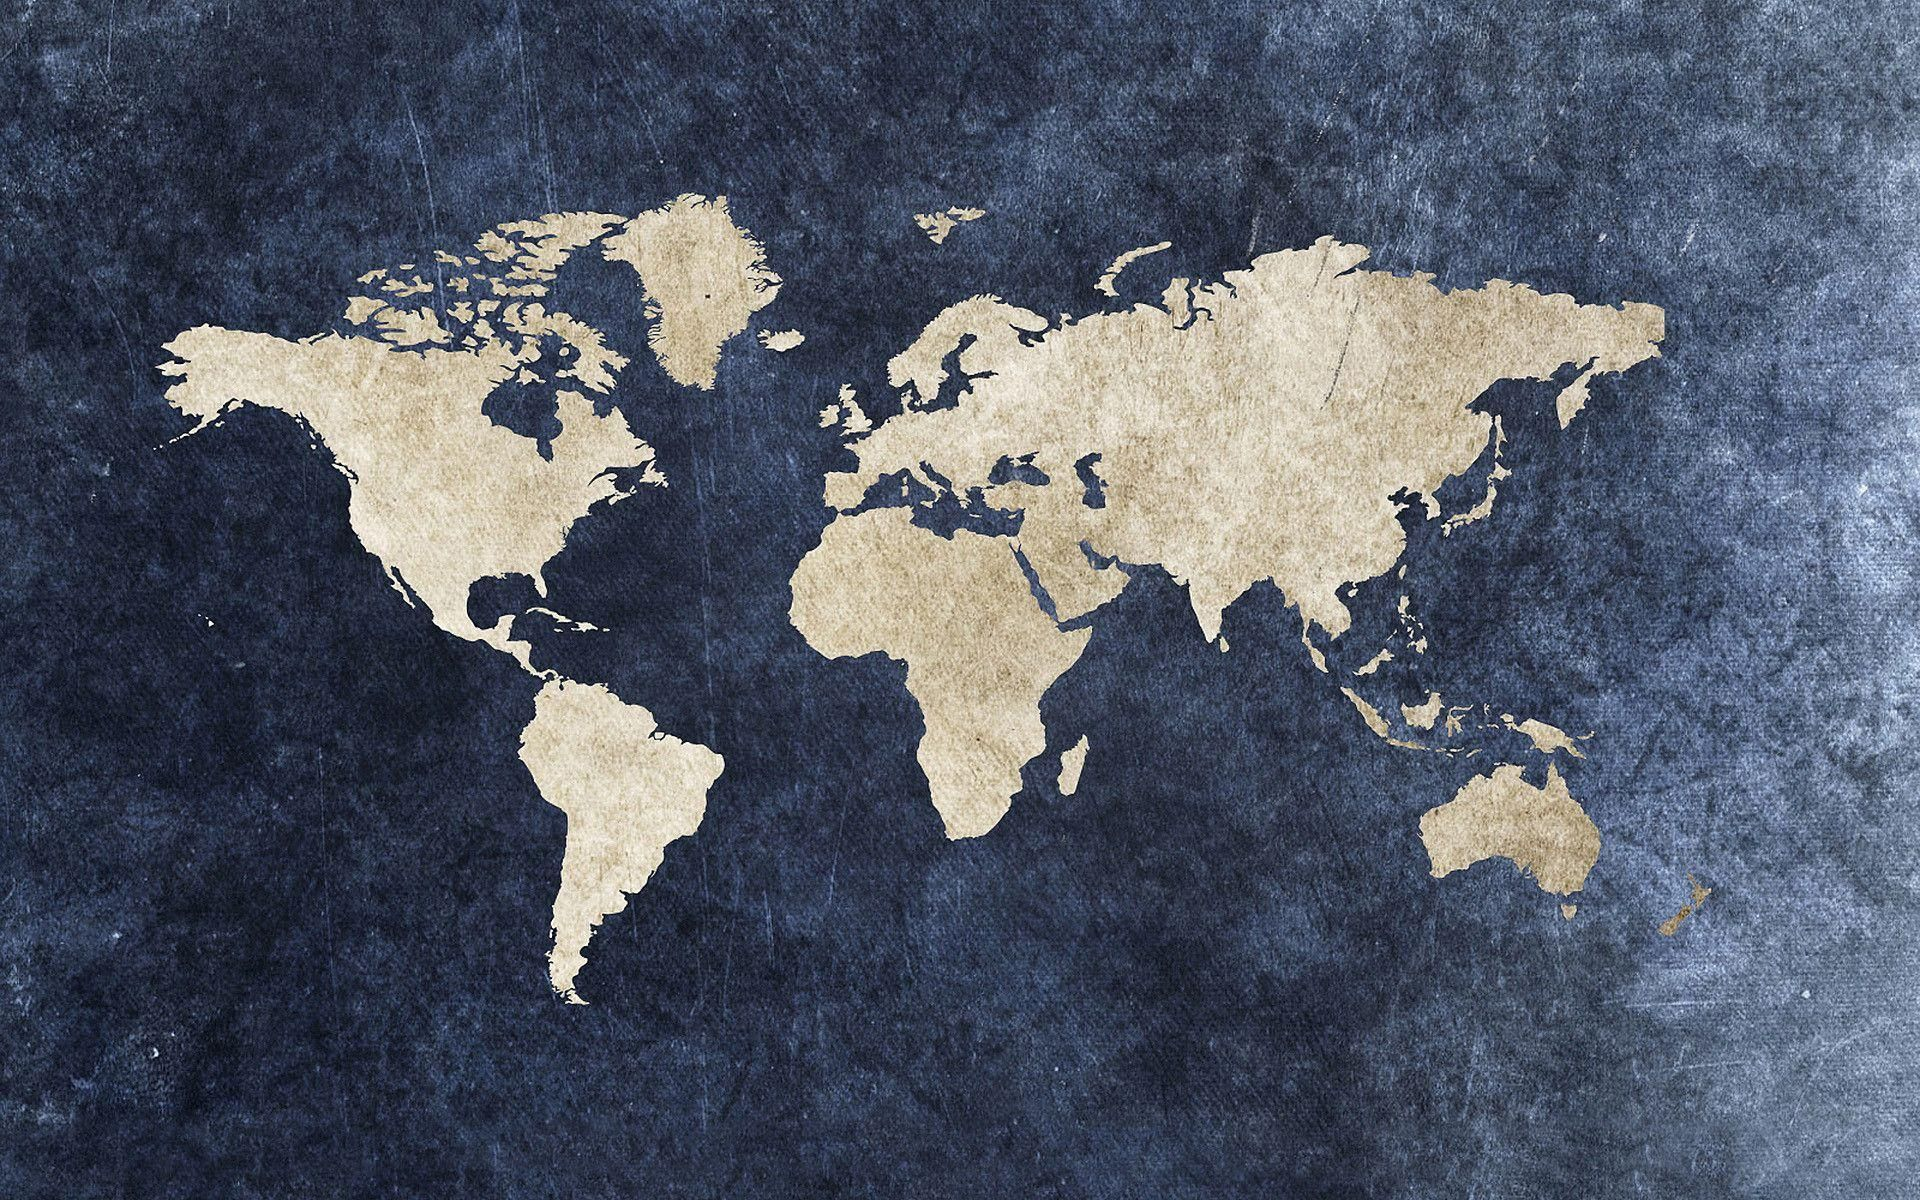 World Map Wallpapers Full Hd Wallpaper Search Computer Wallpaper Desktop Wallpapers Laptop Wallpaper Desktop Wallpapers Wallpaper Notebook